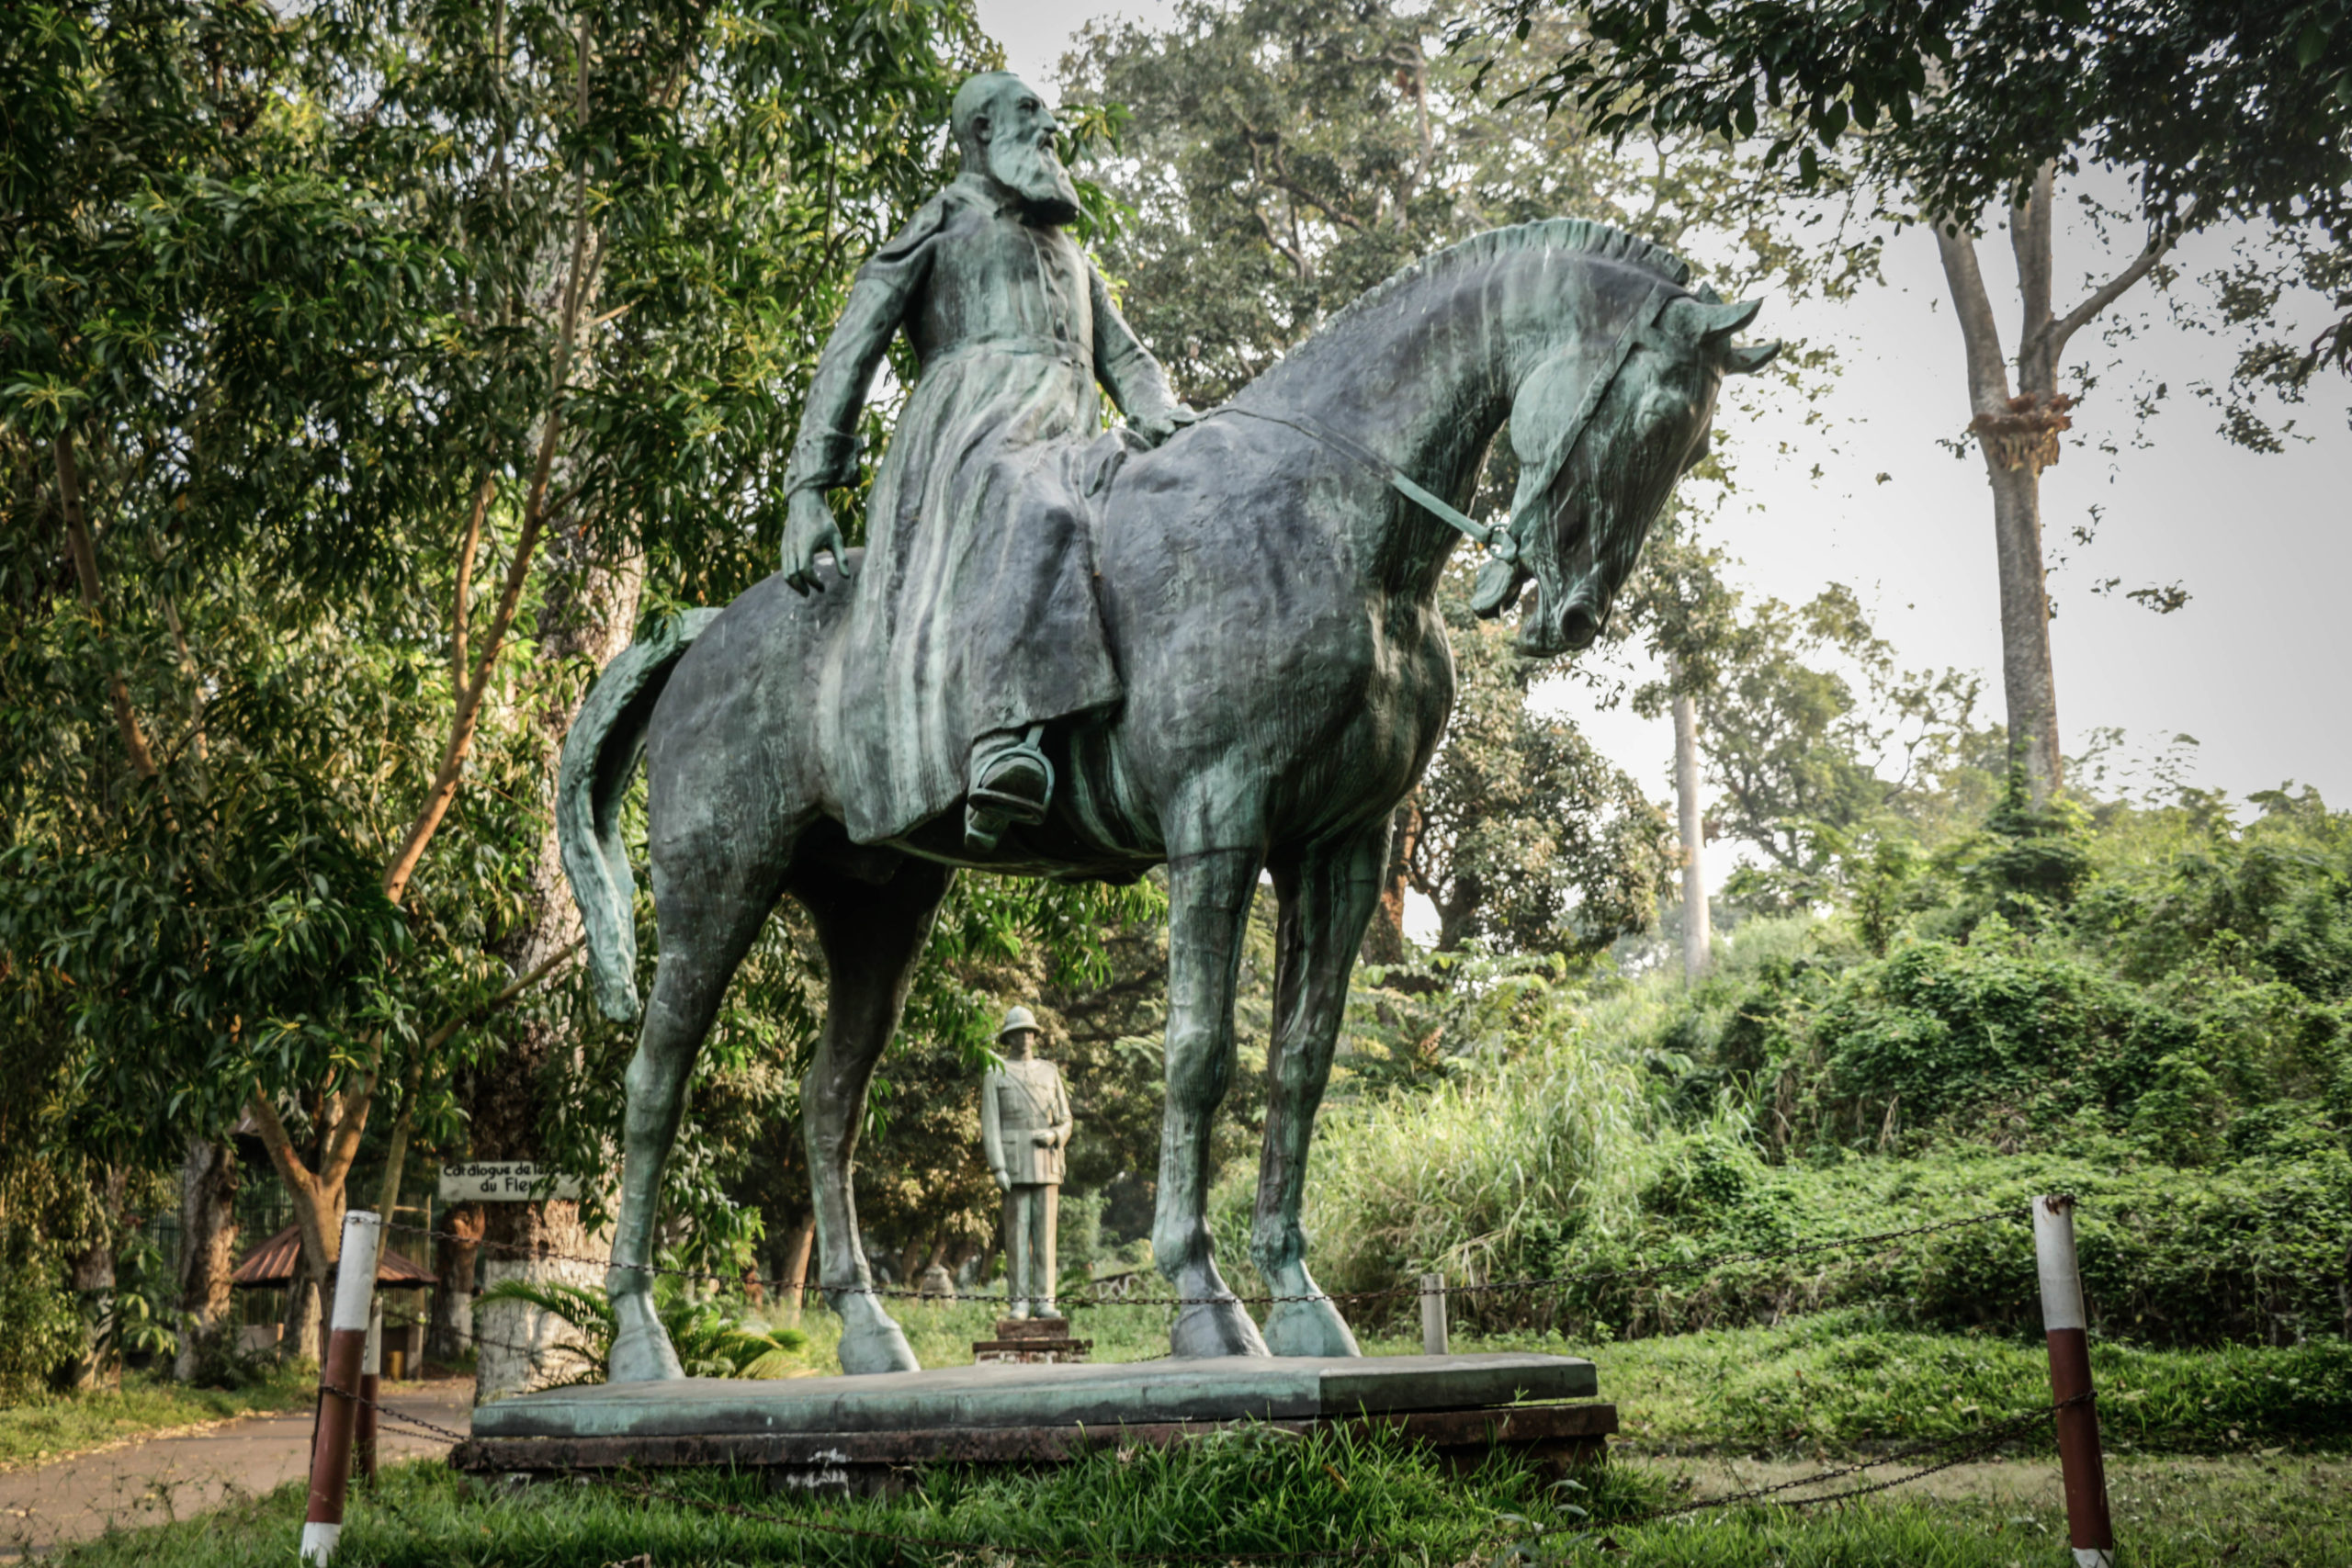 """Kinshasa, Democratic Republic of Congo, June 2020. A six-meter statue of King Leopold II at the Institute of National Museums of Congo, in the Mont Ngaliema area of the capital Kinshasa last week. Inaugurated in 1928 by Albert I, the work was first installed in front of the Palace of the Nation, where the presidency is currently located. The monument was removed in 1967 on the orders of then dictator Mobutu Sese Seko, at the height of his """"return to national and African authenticity"""" policy that sought to rename colonial places. Forgotten for almost four decades, the statue made a sudden reappearance in Kinshasa city centre, on the June 30 Boulevard - the date of independence - in February 2005. For unknown reasons, the statue was taken down again after 24 hours, by the same workers who had erected it. The statue finally reached Ngaliema Park, rehabilitated in 2010 with the help of the United Nations Mission in the Congo, known as Monusco. A statue of King Albert I, Leopold's nephew and successor, can be seen beneath the horse. © Justin Makangara for Fondation Carmignac"""